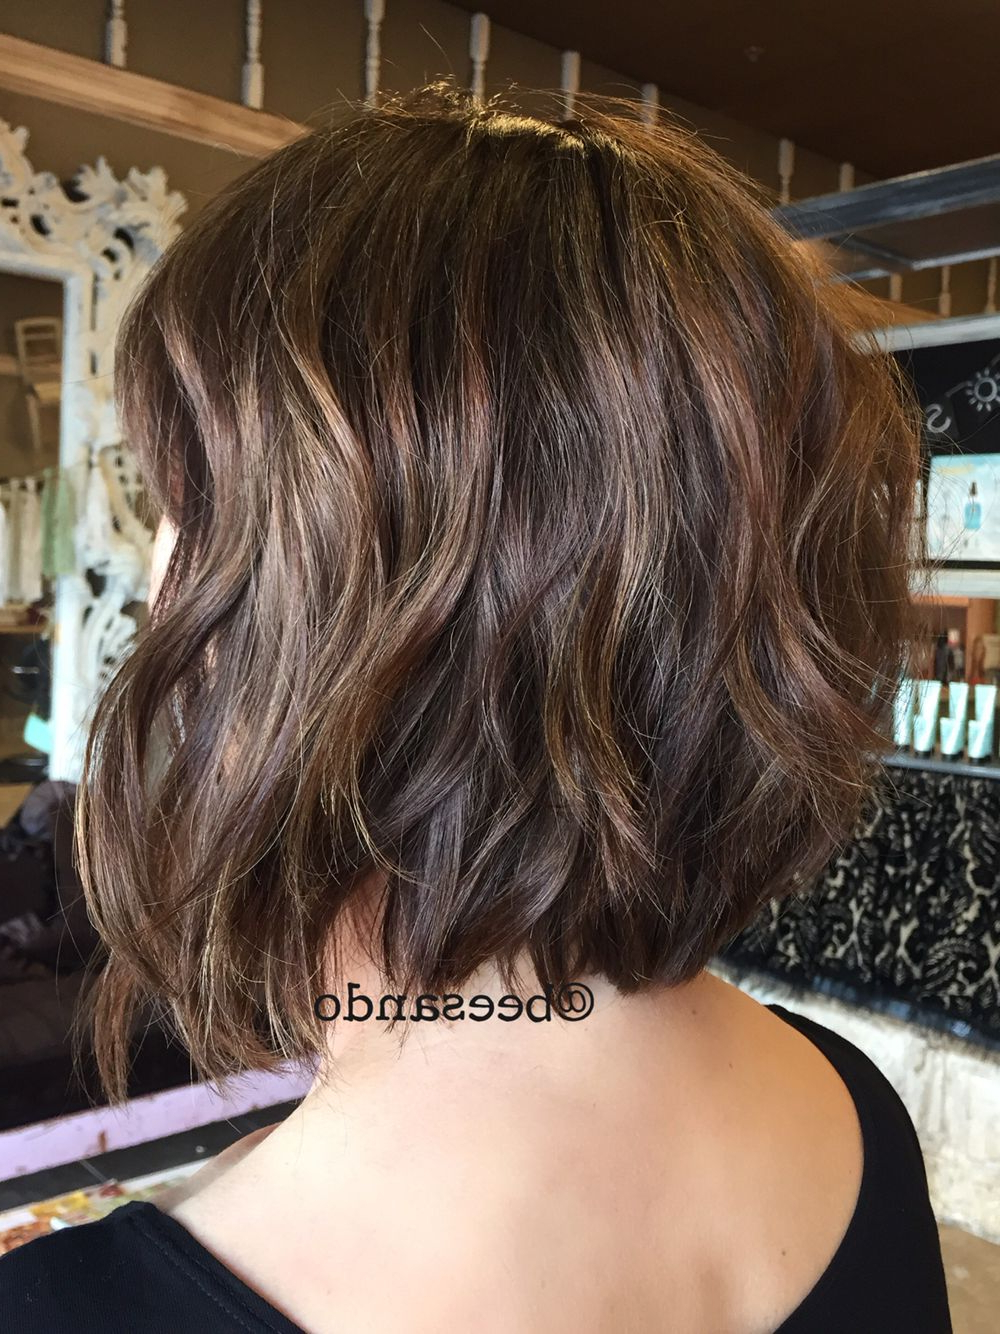 Blondes, Bobs & Balayage (View 3 of 20)